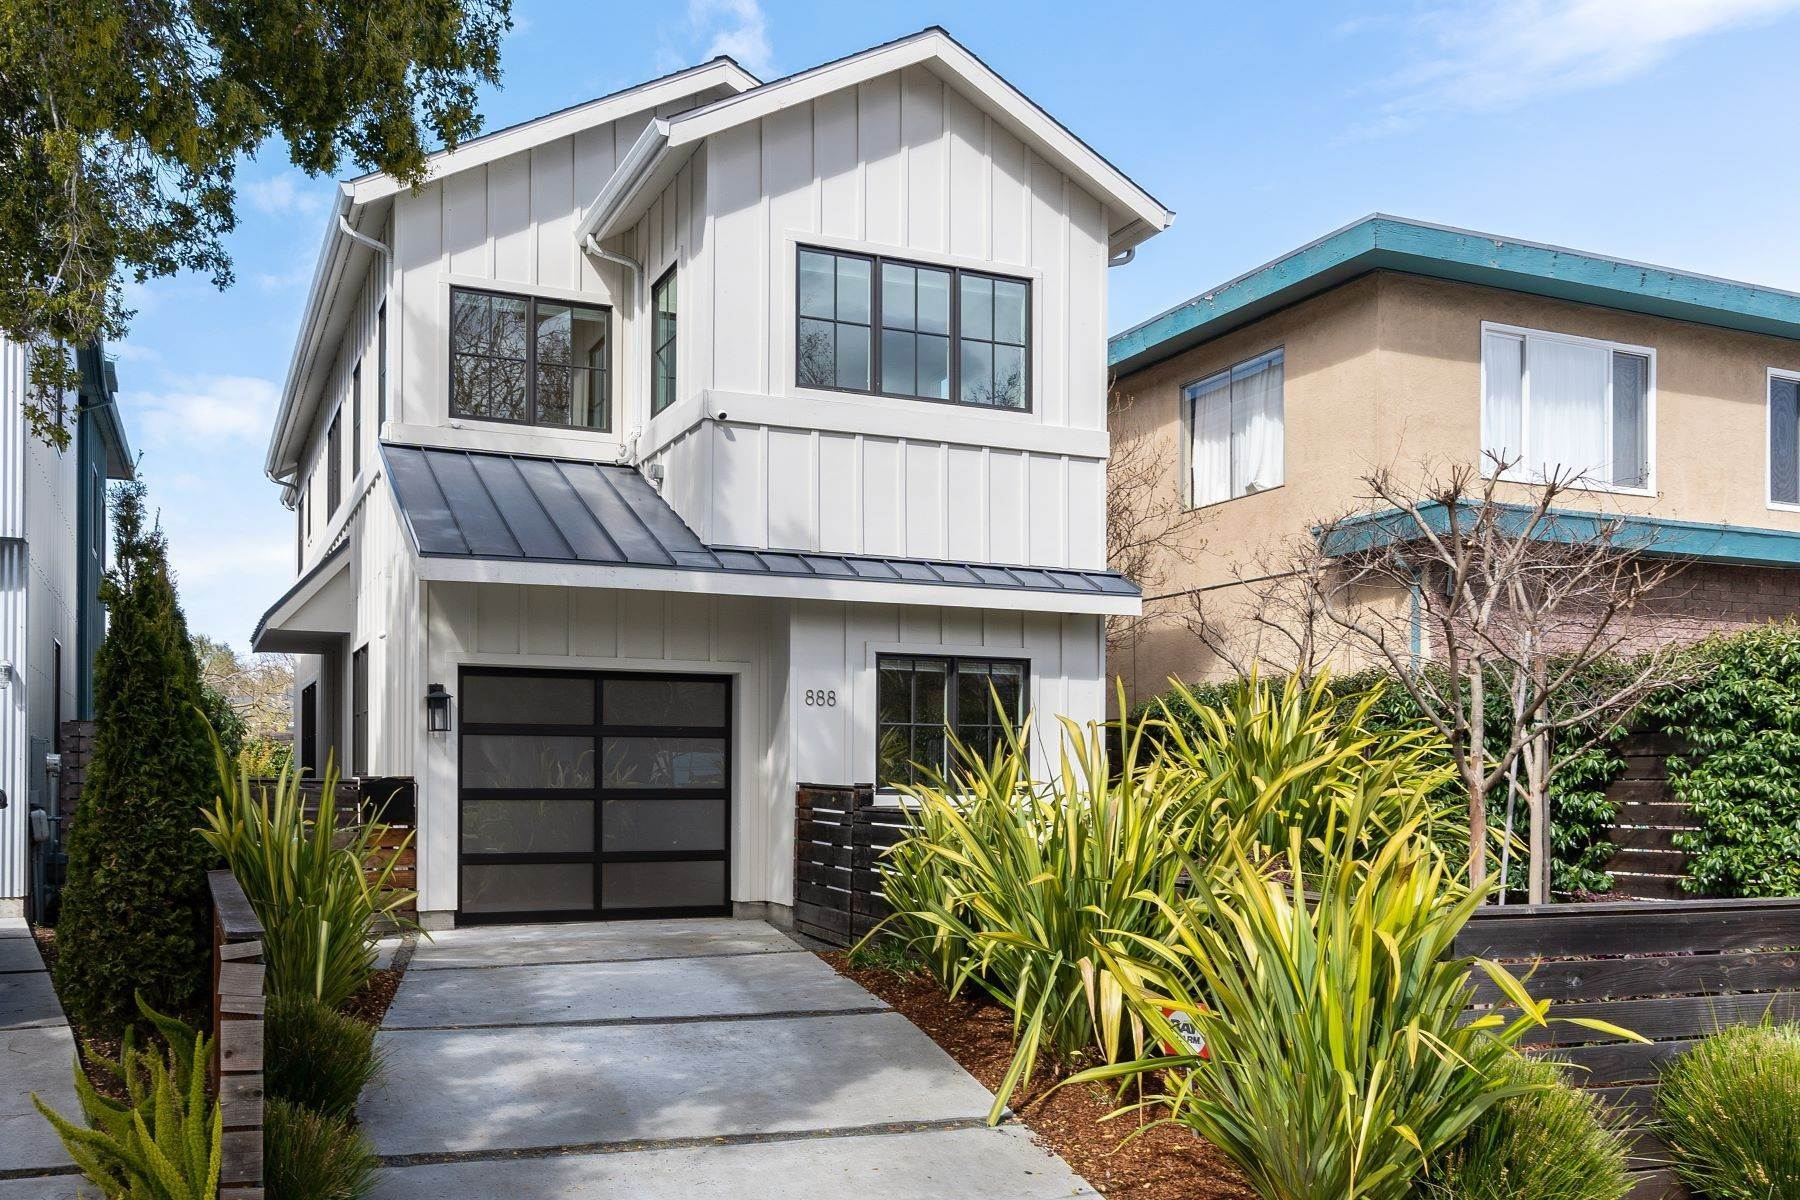 4. Single Family Homes for Sale at Modern Meets Comfort 888 59th Street Oakland, California 94608 United States